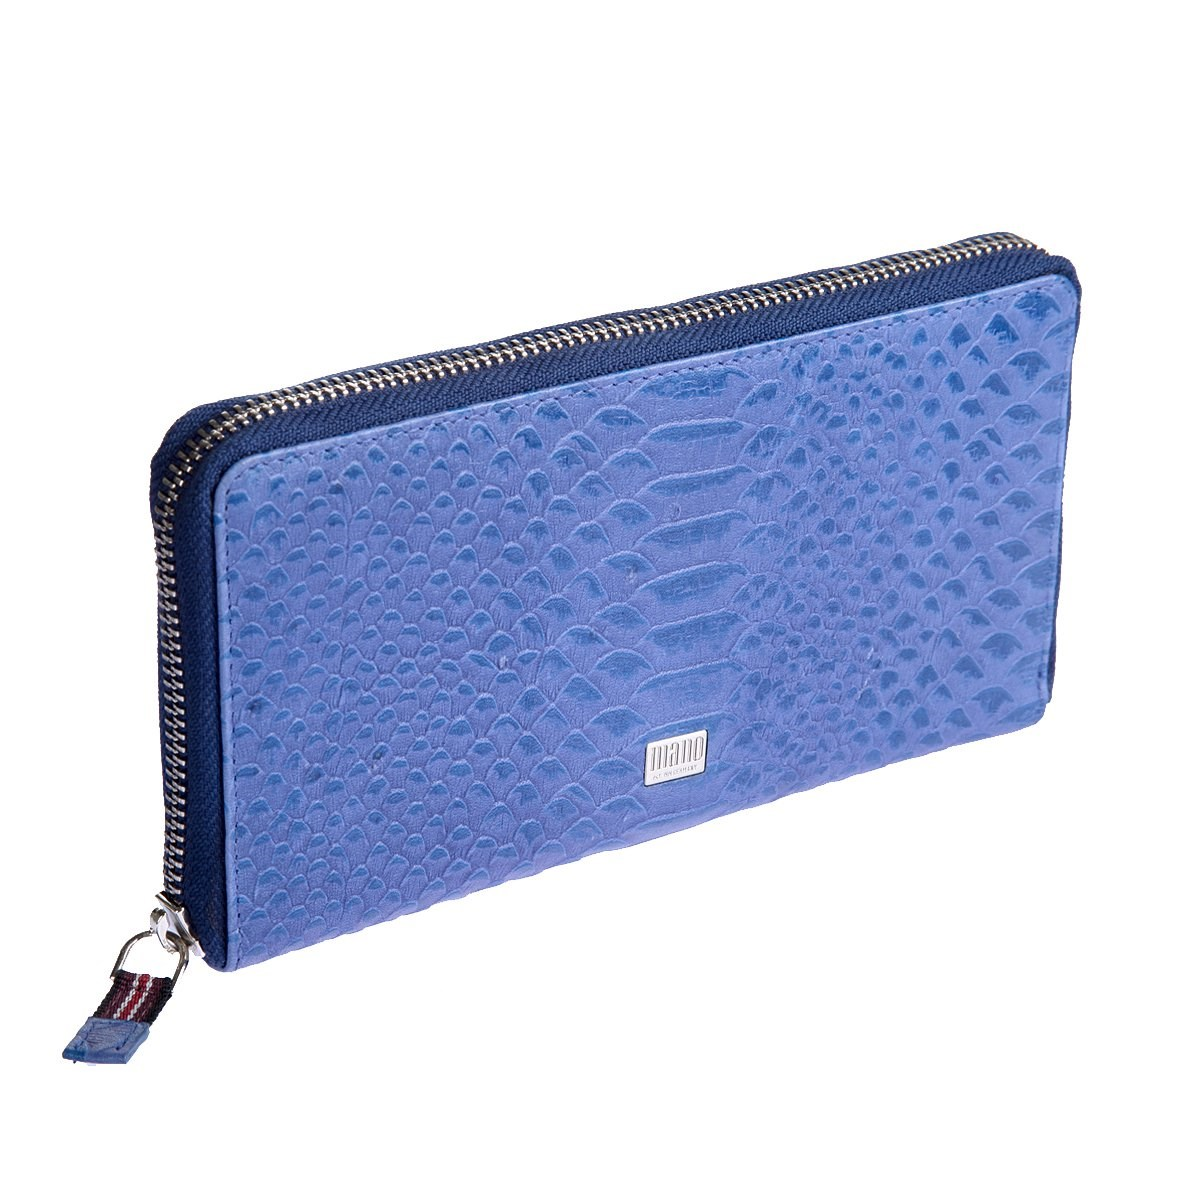 Coin Purse Mano 20151 croco blue босоножки croco